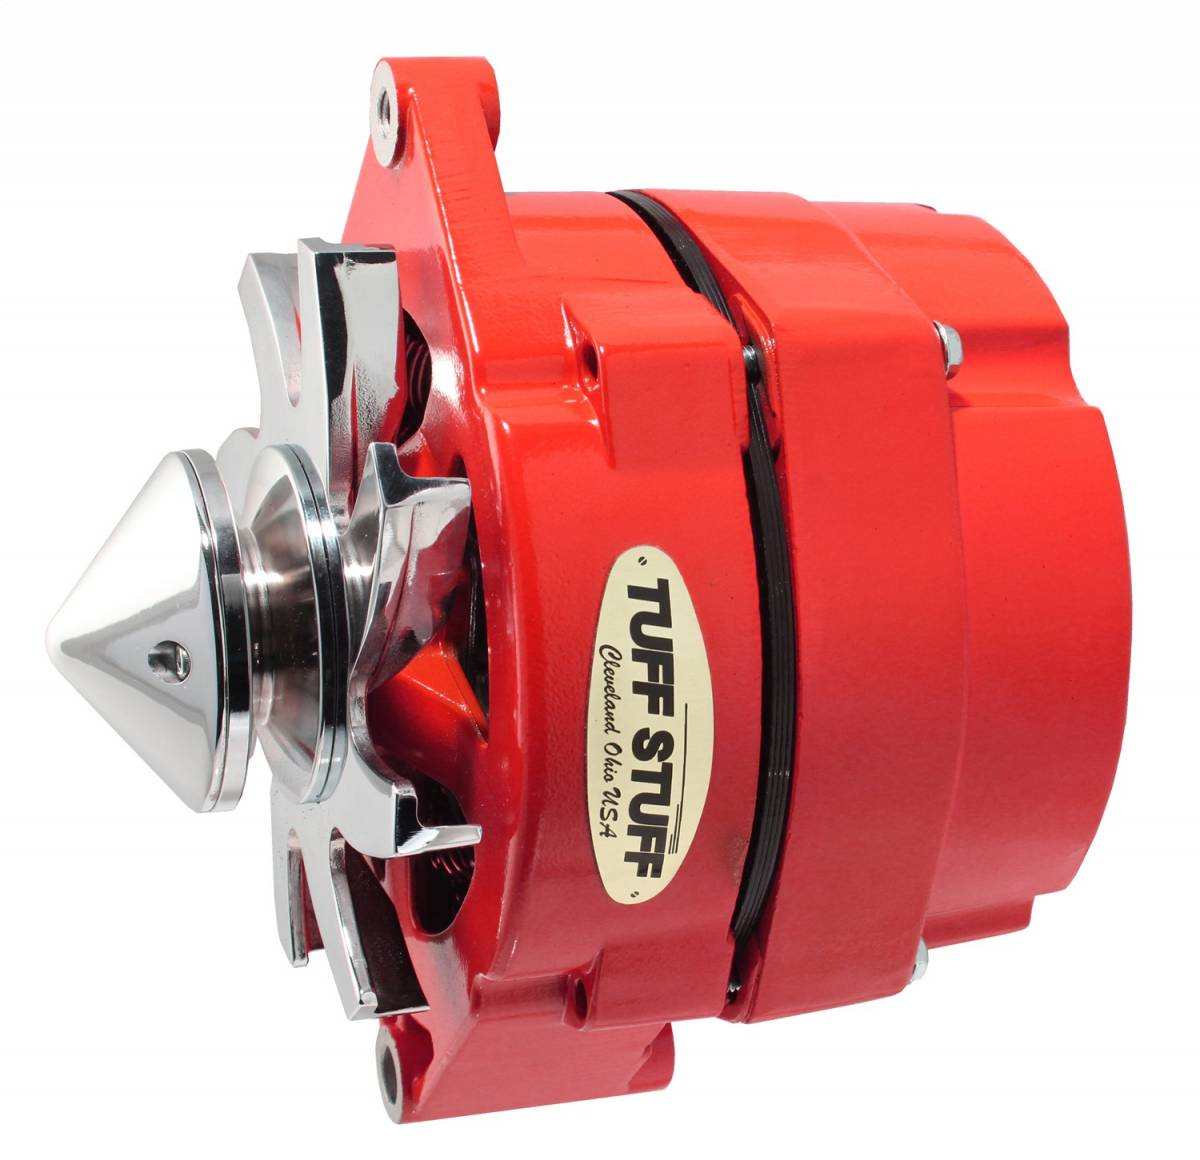 Tuff Stuff Performance - Silver Bullet Alternator 100 AMP OEM Or 1 Wire V Groove Bullet Pulley 4.85 in. Case Depth Lower Mount Boss 2 in. Long Red Powdercoat w/Chrome Accents 7139FBULLRED